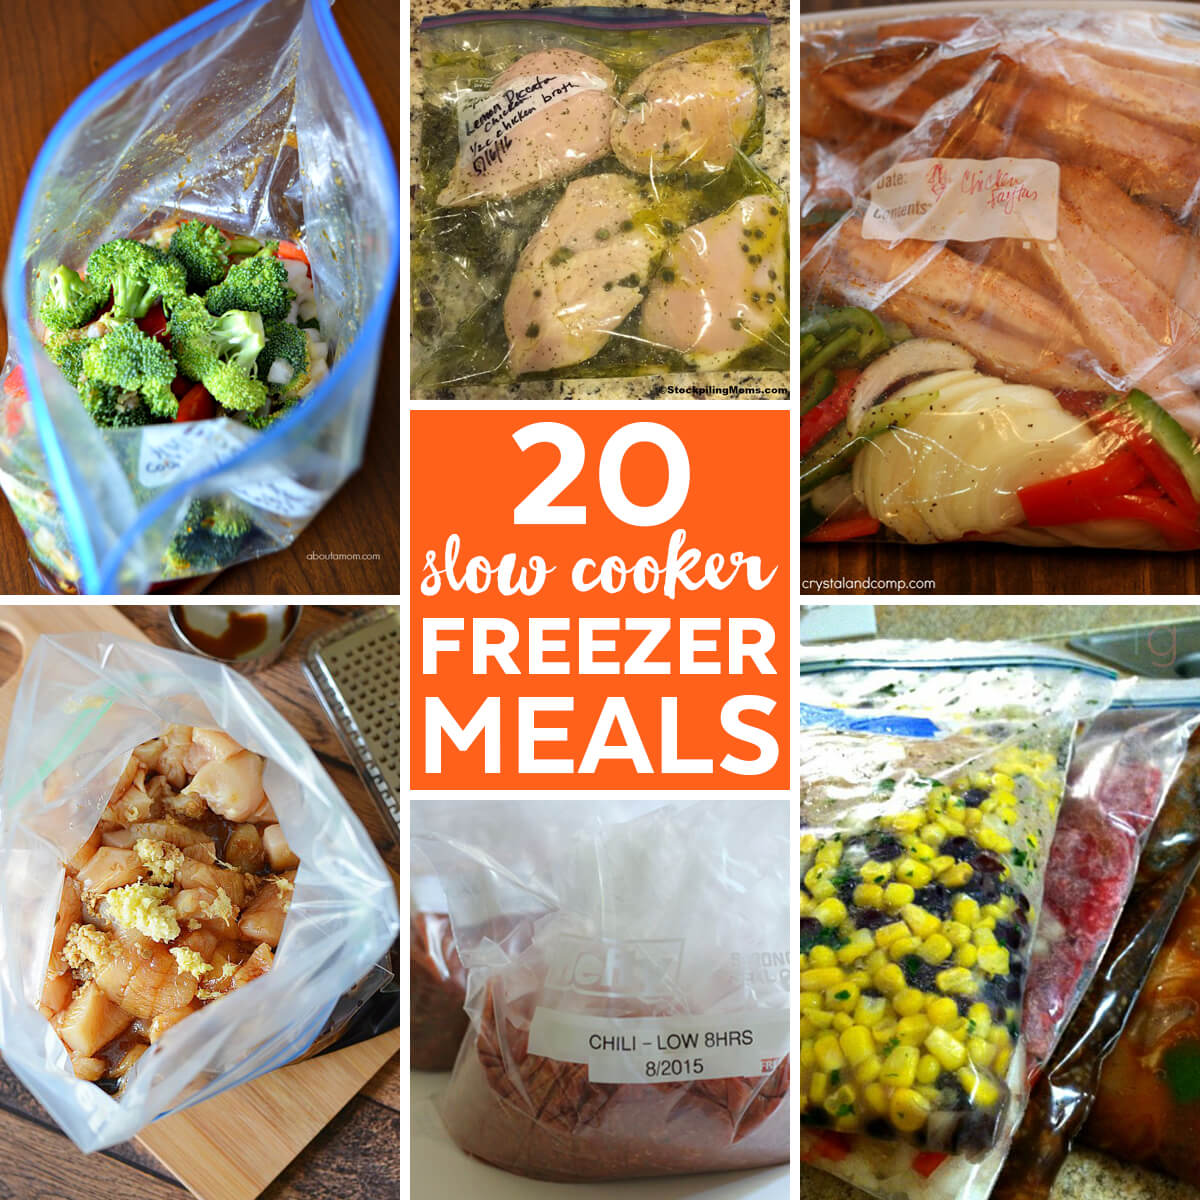 20 Make Ahead Camping Recipes For Easy Meal Planning: 20 Slow Cooker Freezer Meals To Fill Your Freezer